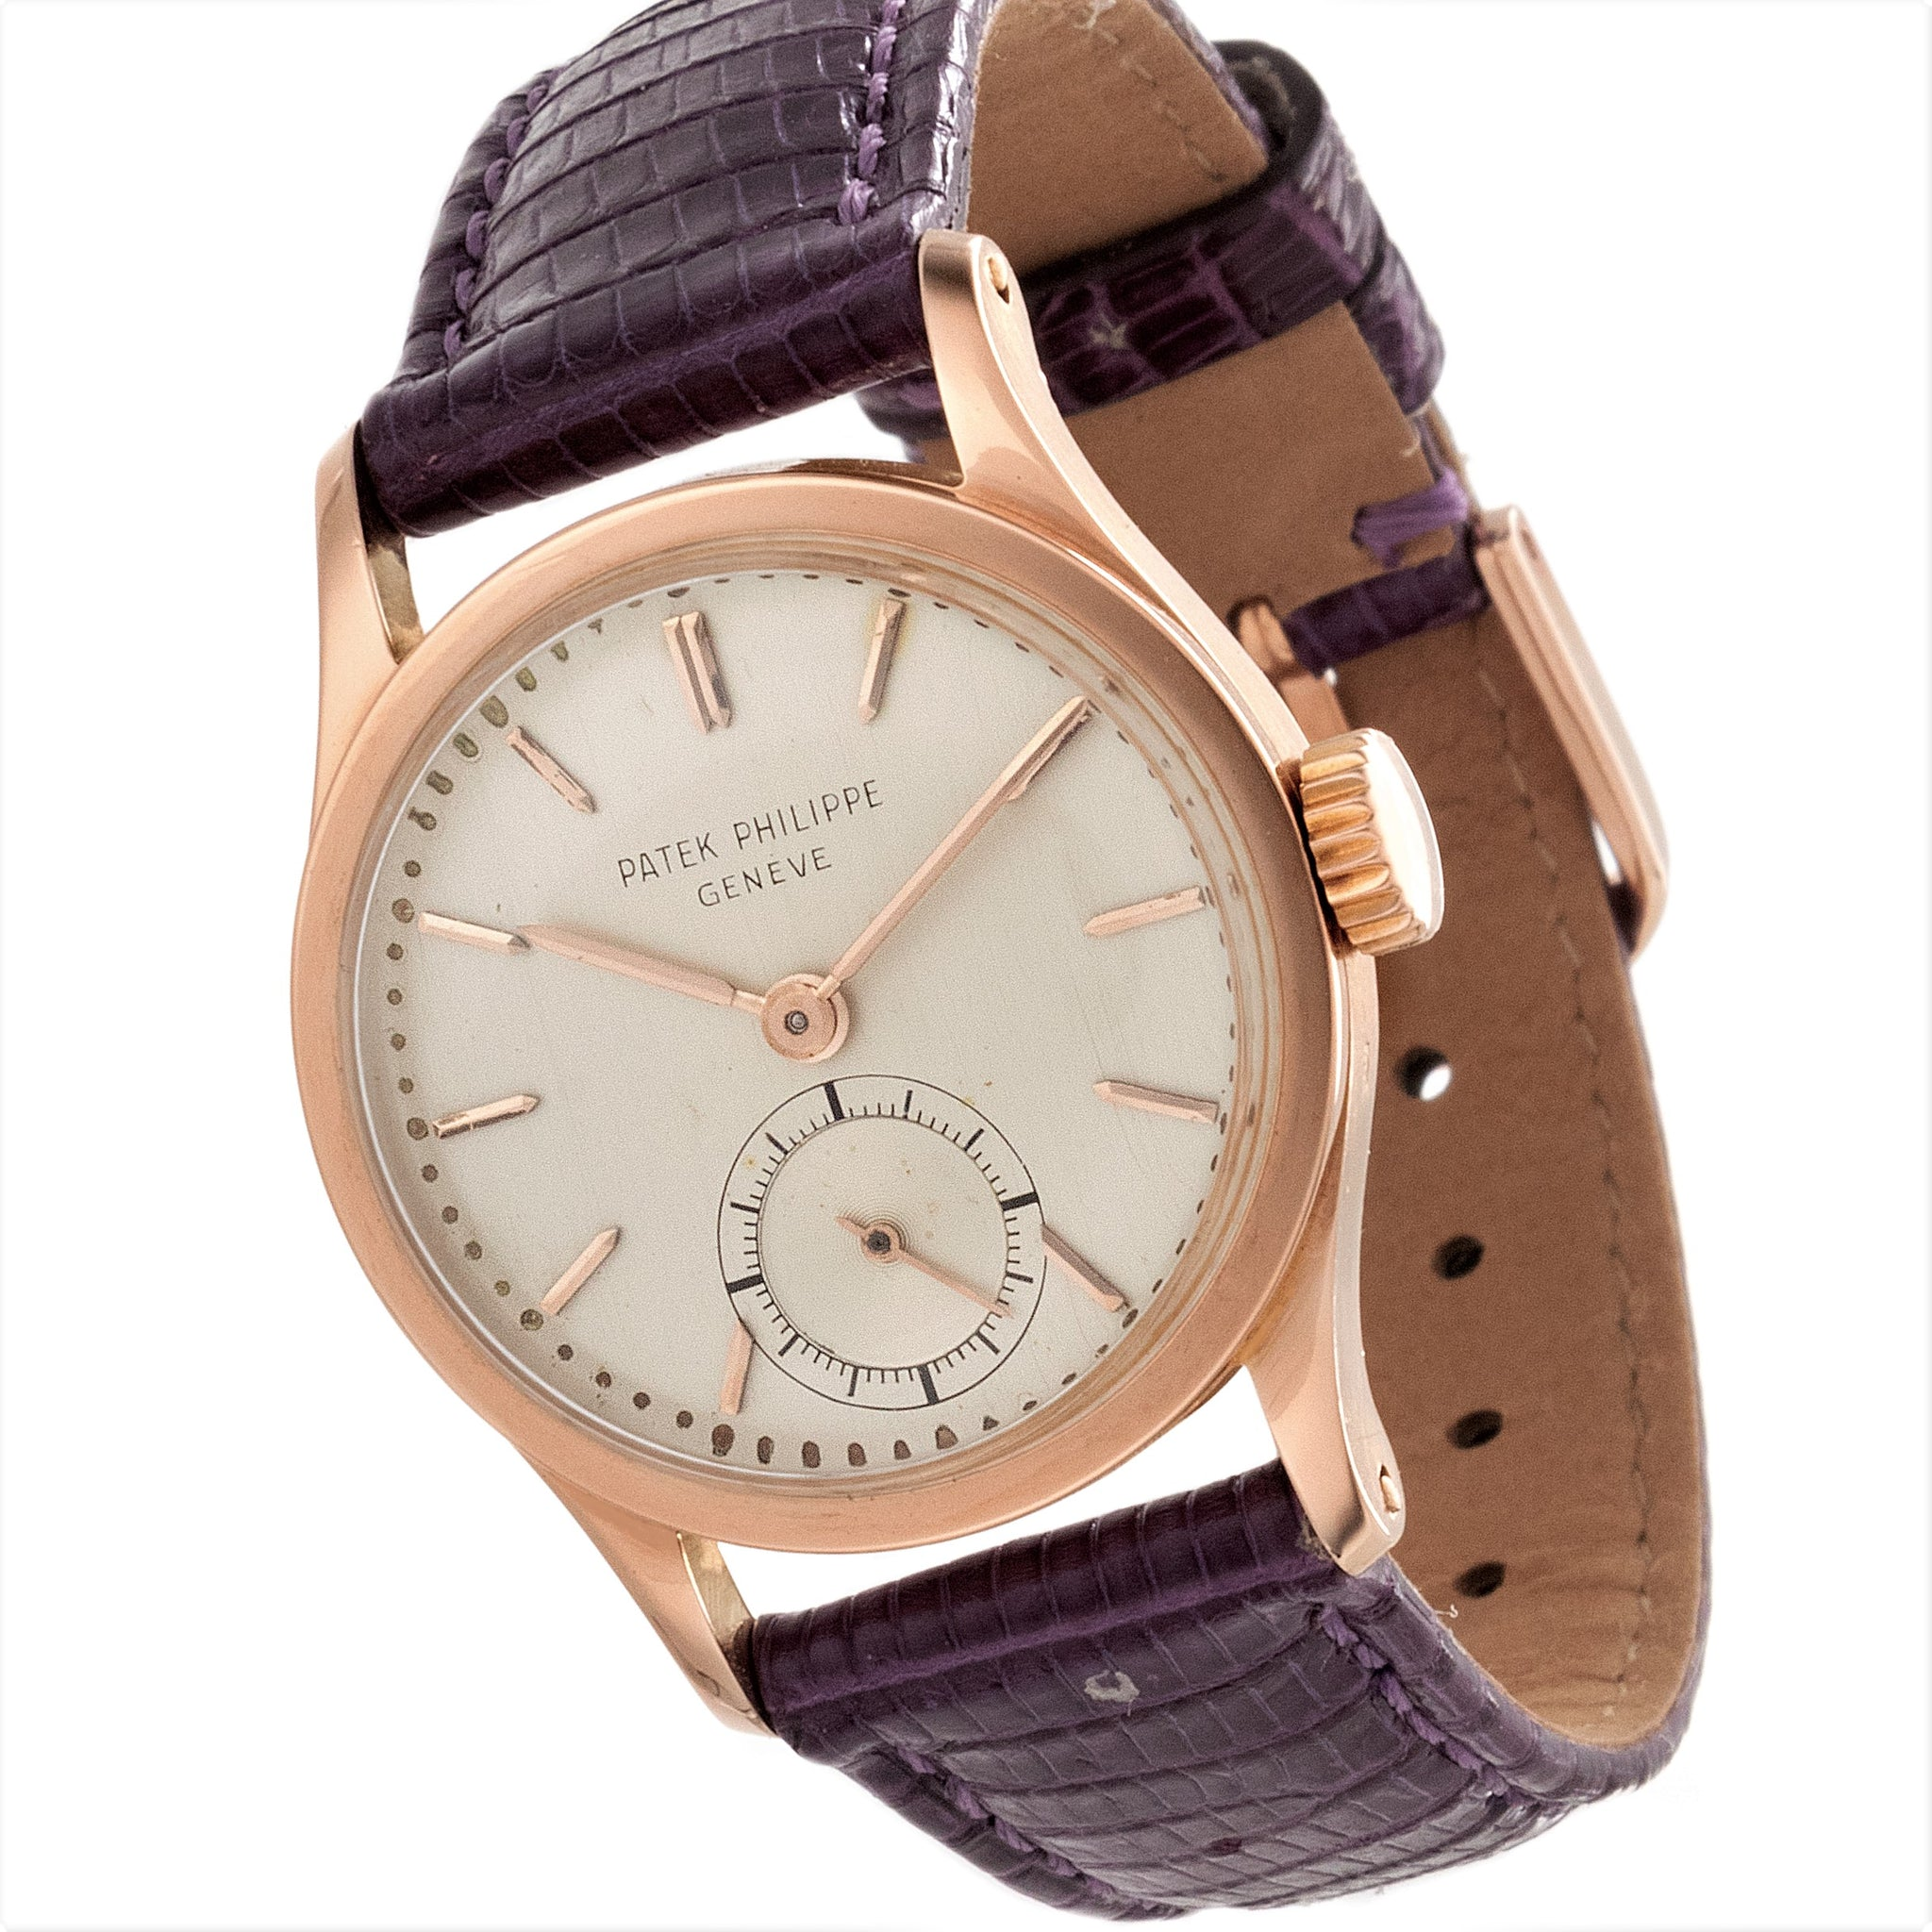 Patek Philippe 448R Calatrava Watch